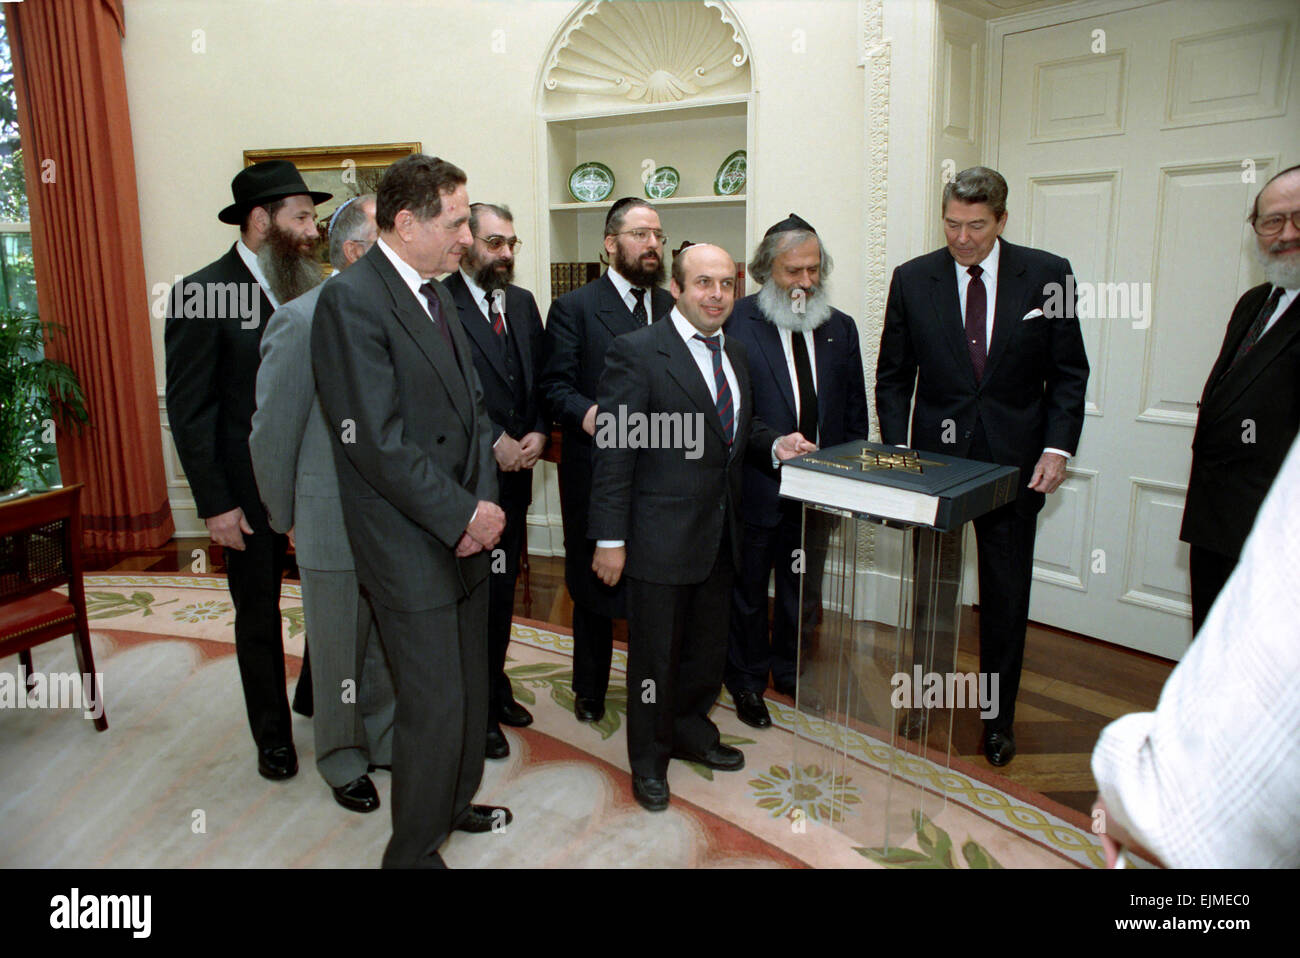 US President Ronald Reagan meets with with Soviet Jewish emigres including Natan Sharansky to receive Passover haggadah - Stock Image